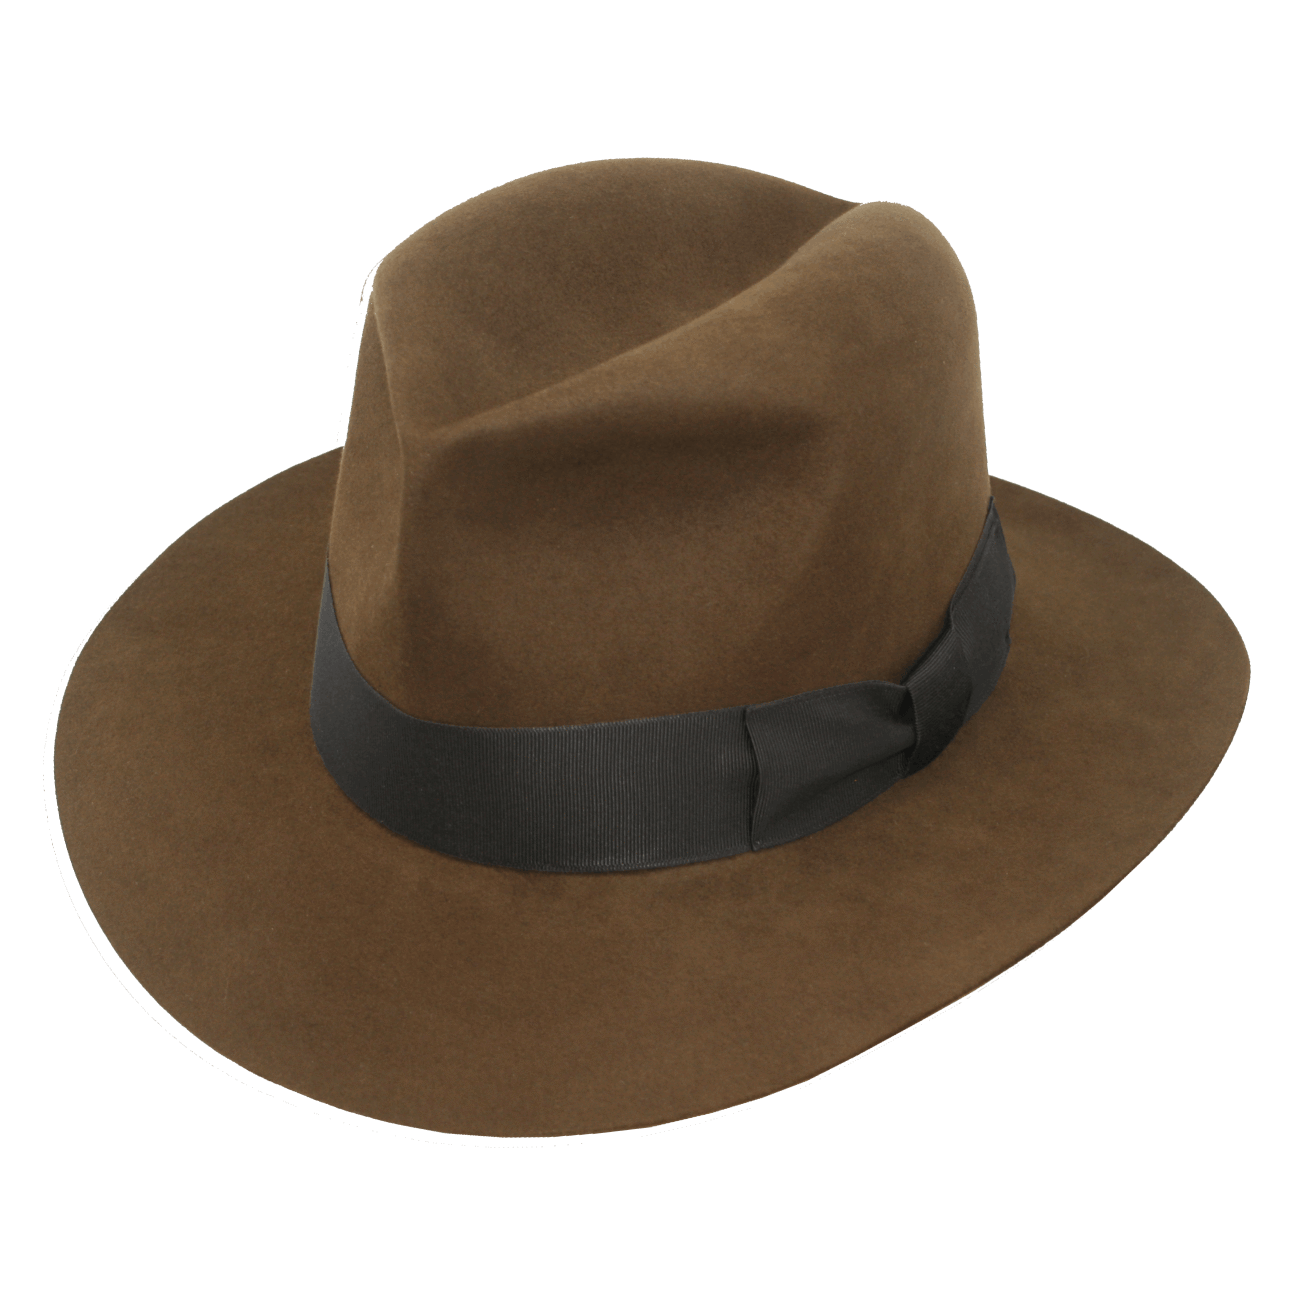 The Luxury Version Of The Original Herbert Johnson Indiana Jones Poet Made Famous By Harrison Ford In Spi Harrison Ford Swaine Adeney Brigg Indiana Jones Films